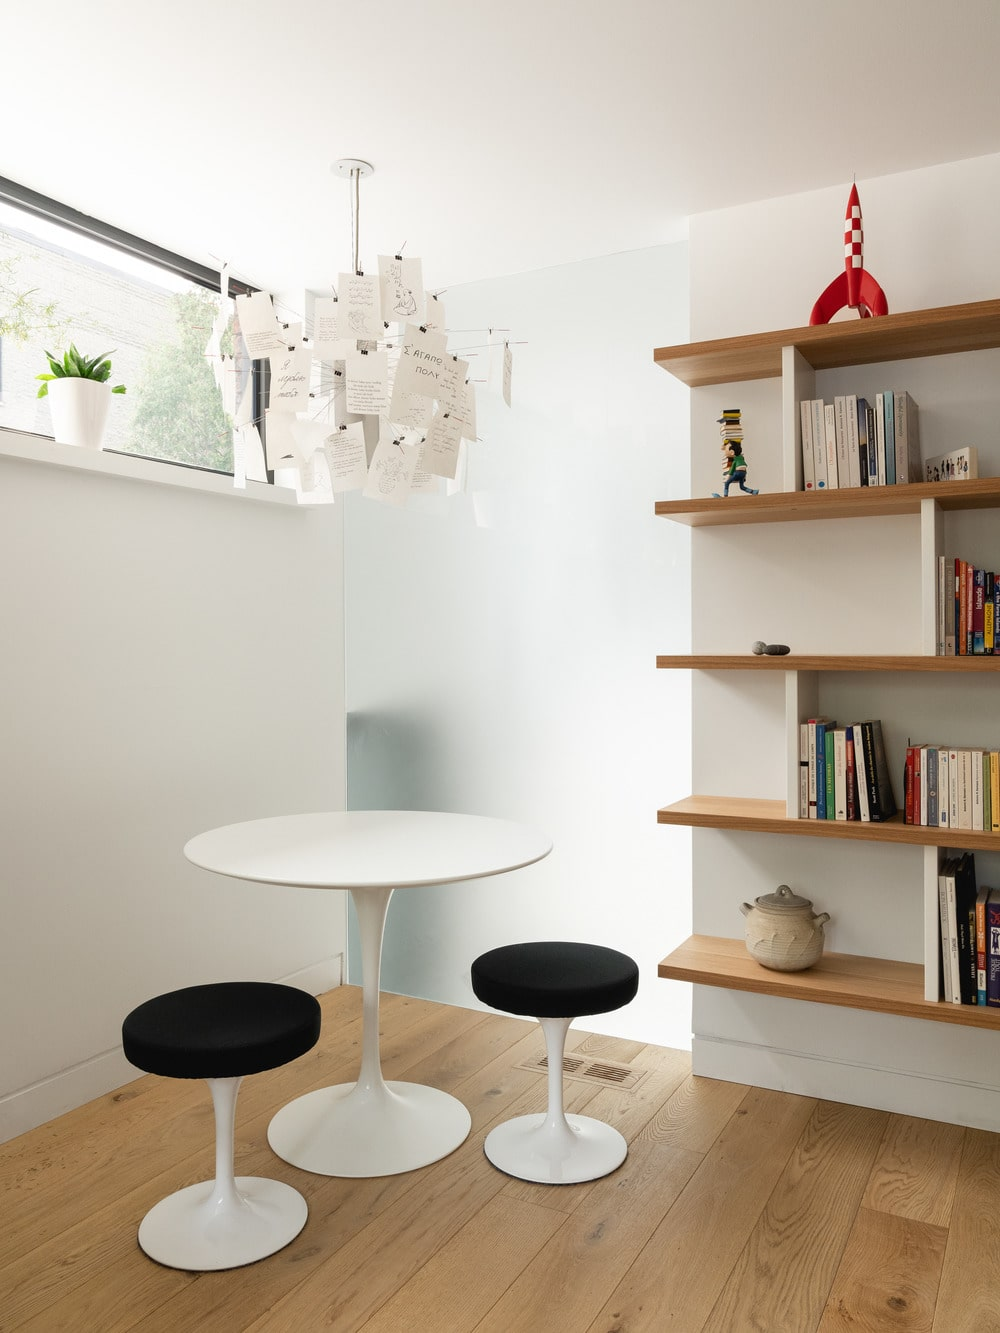 This is a corner library with a round white modern table next to a built-in modern shelf.